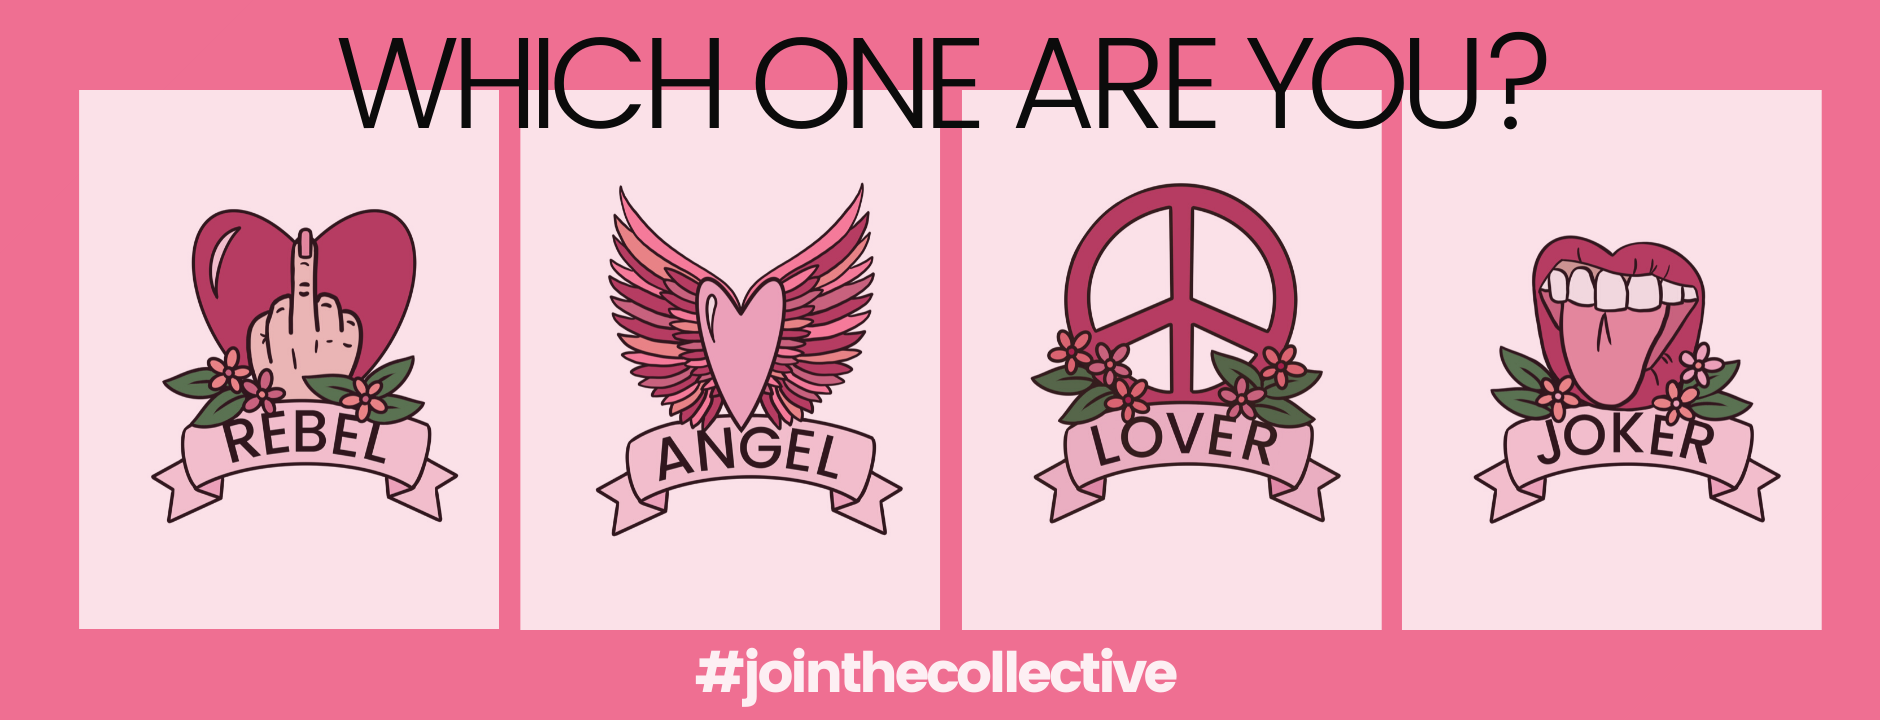 Which one are you home page banner rebel angel lover joker